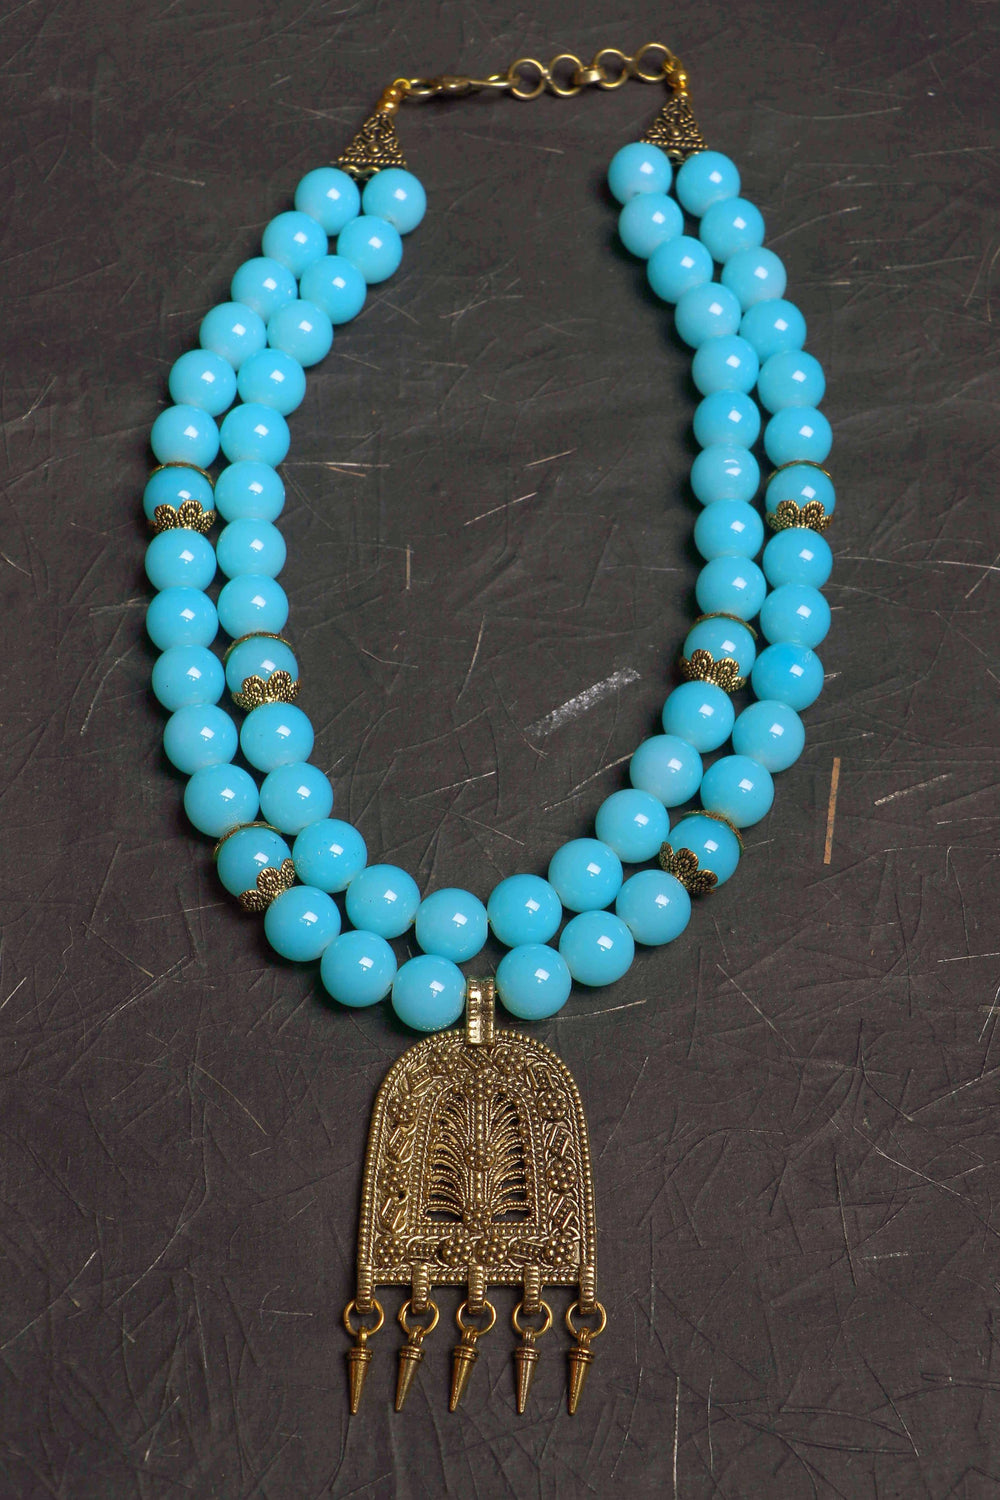 glass bead necklace in large double stranded sky blue glass beads, with antique gold pendant